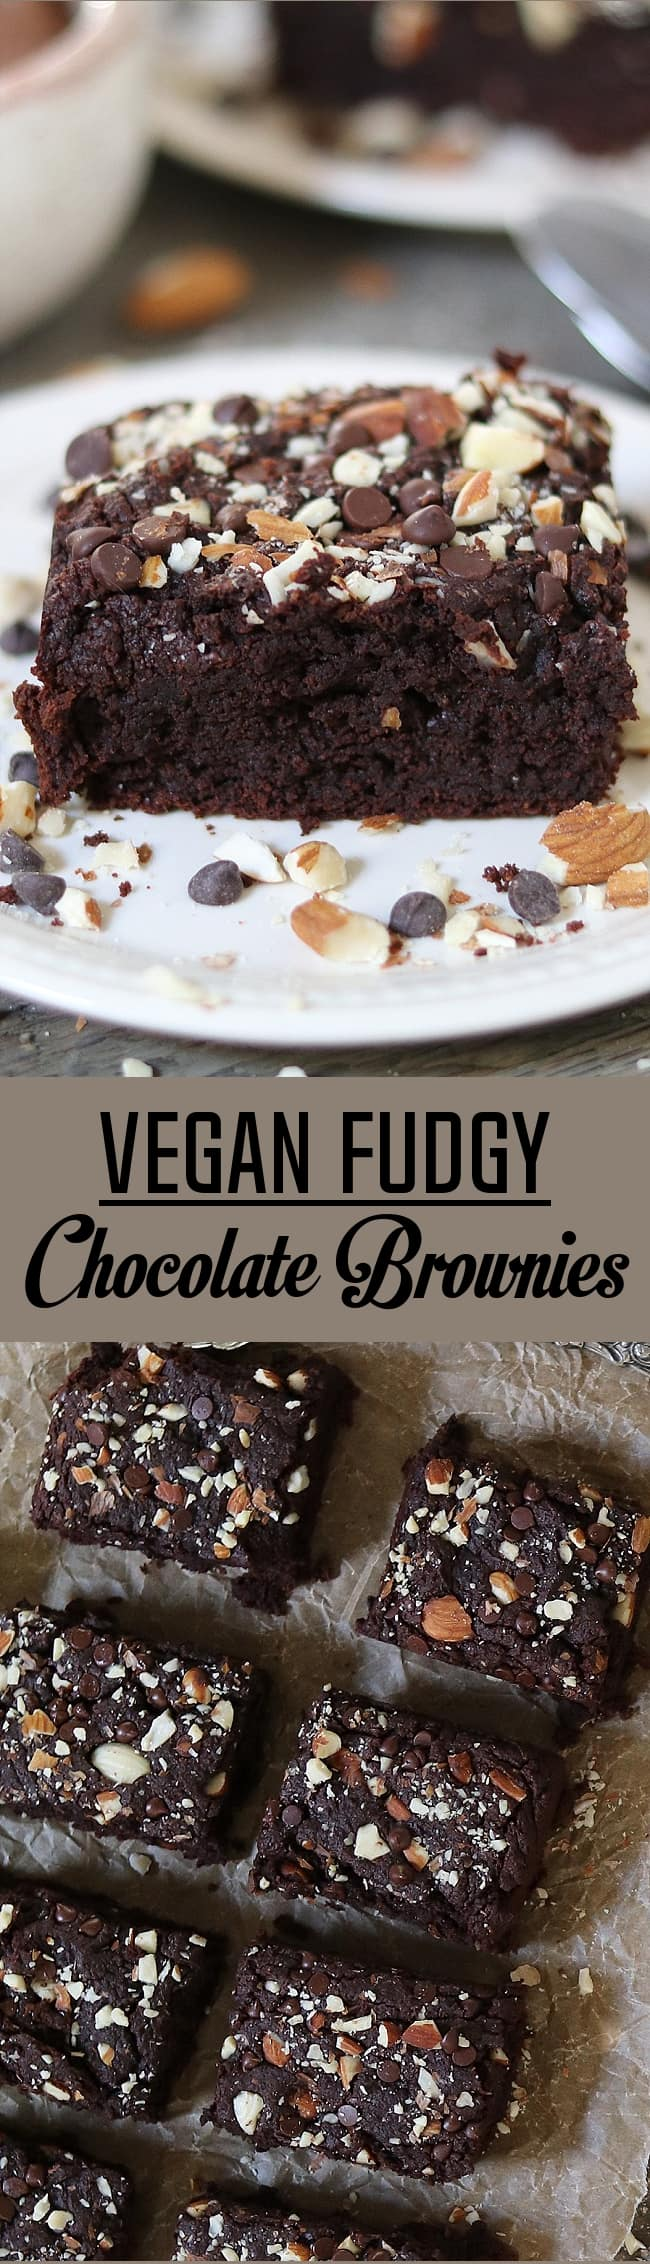 These Vegan Fudgy Chocolate Brownies are super chocolatey, nutty, and delicious. Made without oil or gluten.